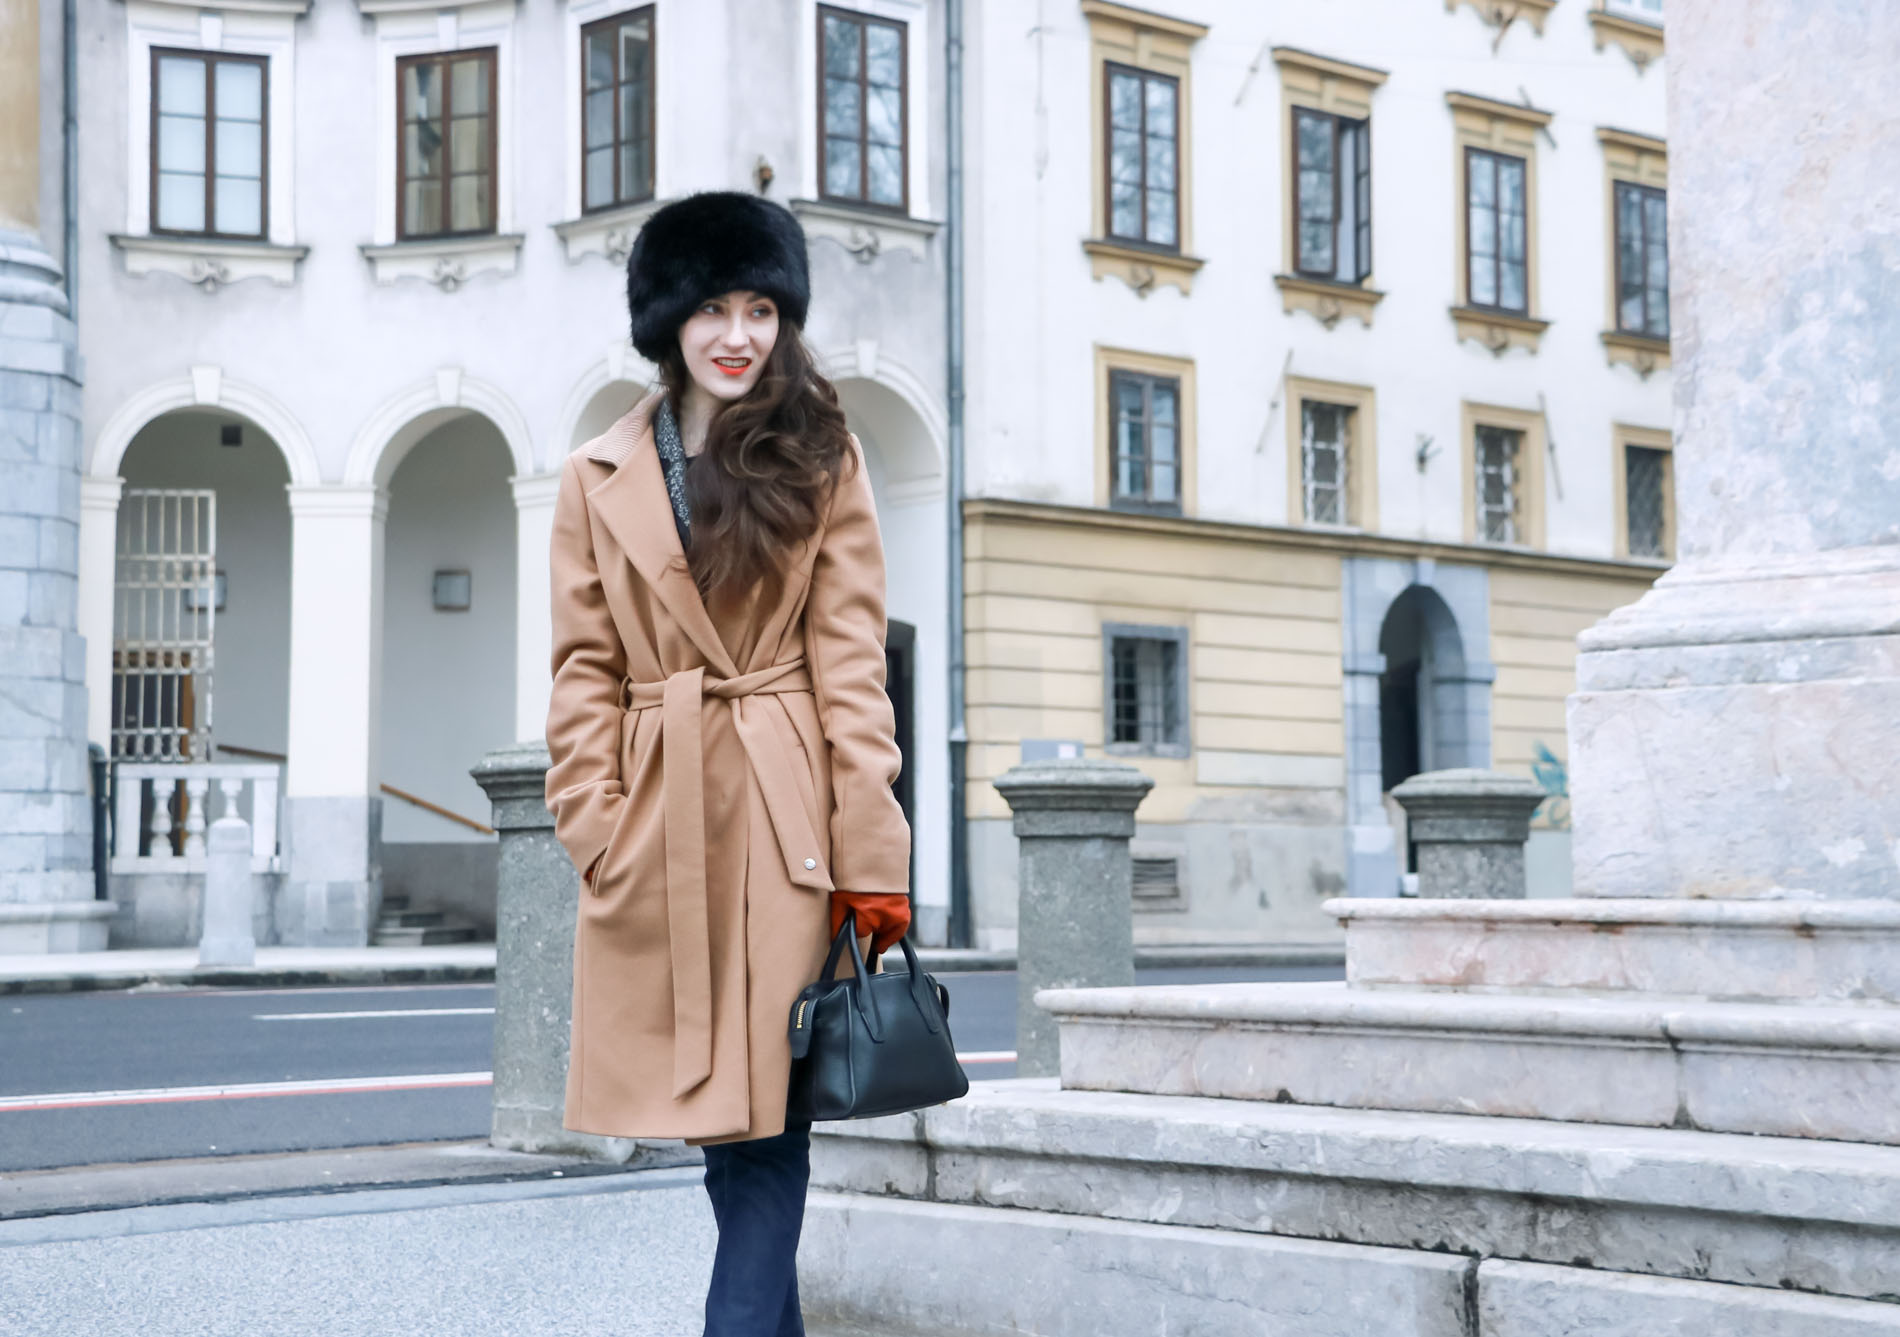 Fashion Blogger Veronika Lipar of Brunette from Wall Street dressed in wrap Escada camel coat, A.P.C. dark tapered denim jeans, black sock boots from Elena Iachi, black fur hat and small black top handle bag